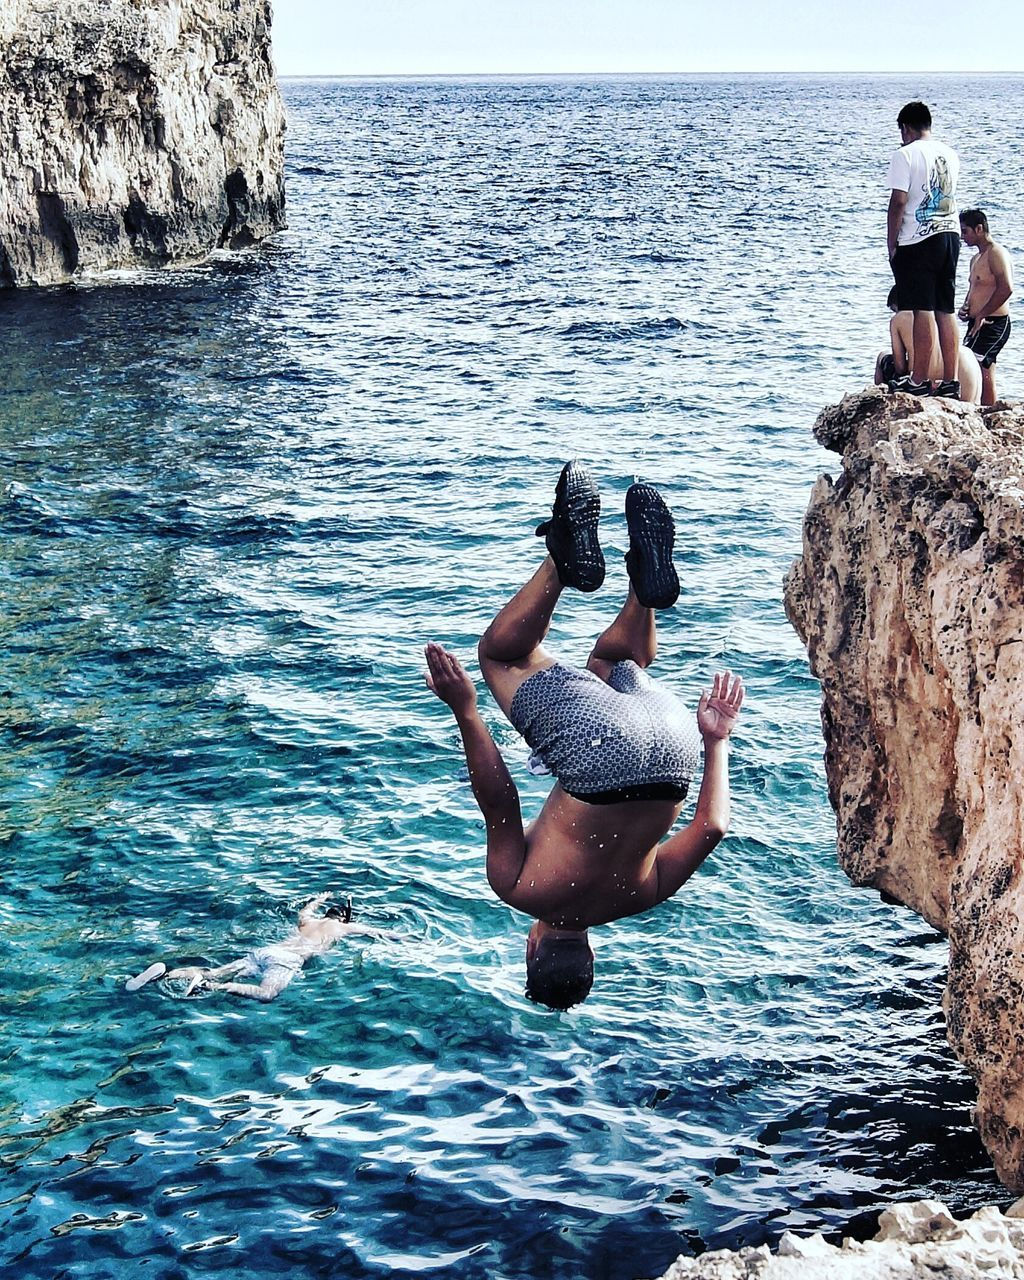 sea, real people, water, rock - object, men, lifestyles, leisure activity, beauty in nature, full length, nature, rear view, day, shirtless, horizon over water, outdoors, two people, scenics, togetherness, standing, clear sky, sky, adult, people